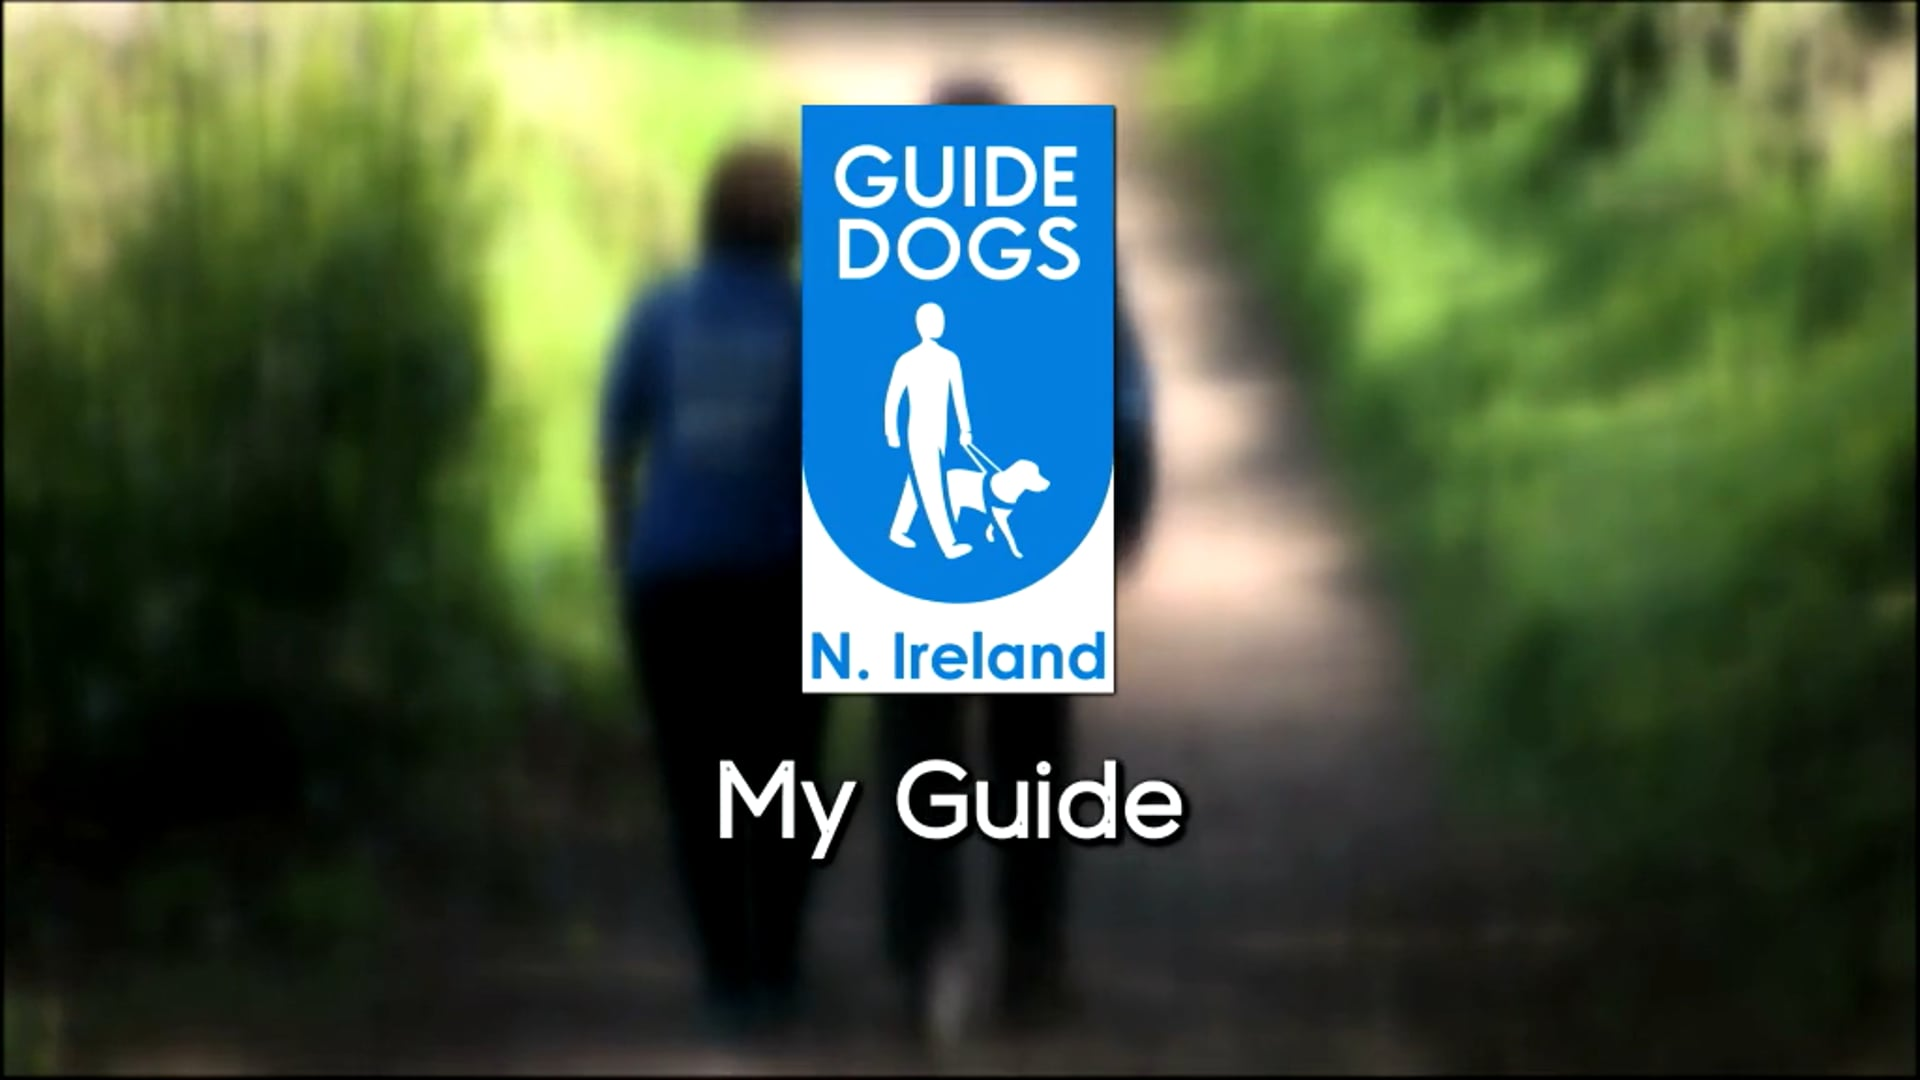 My Guide Dogs Northern Ireland